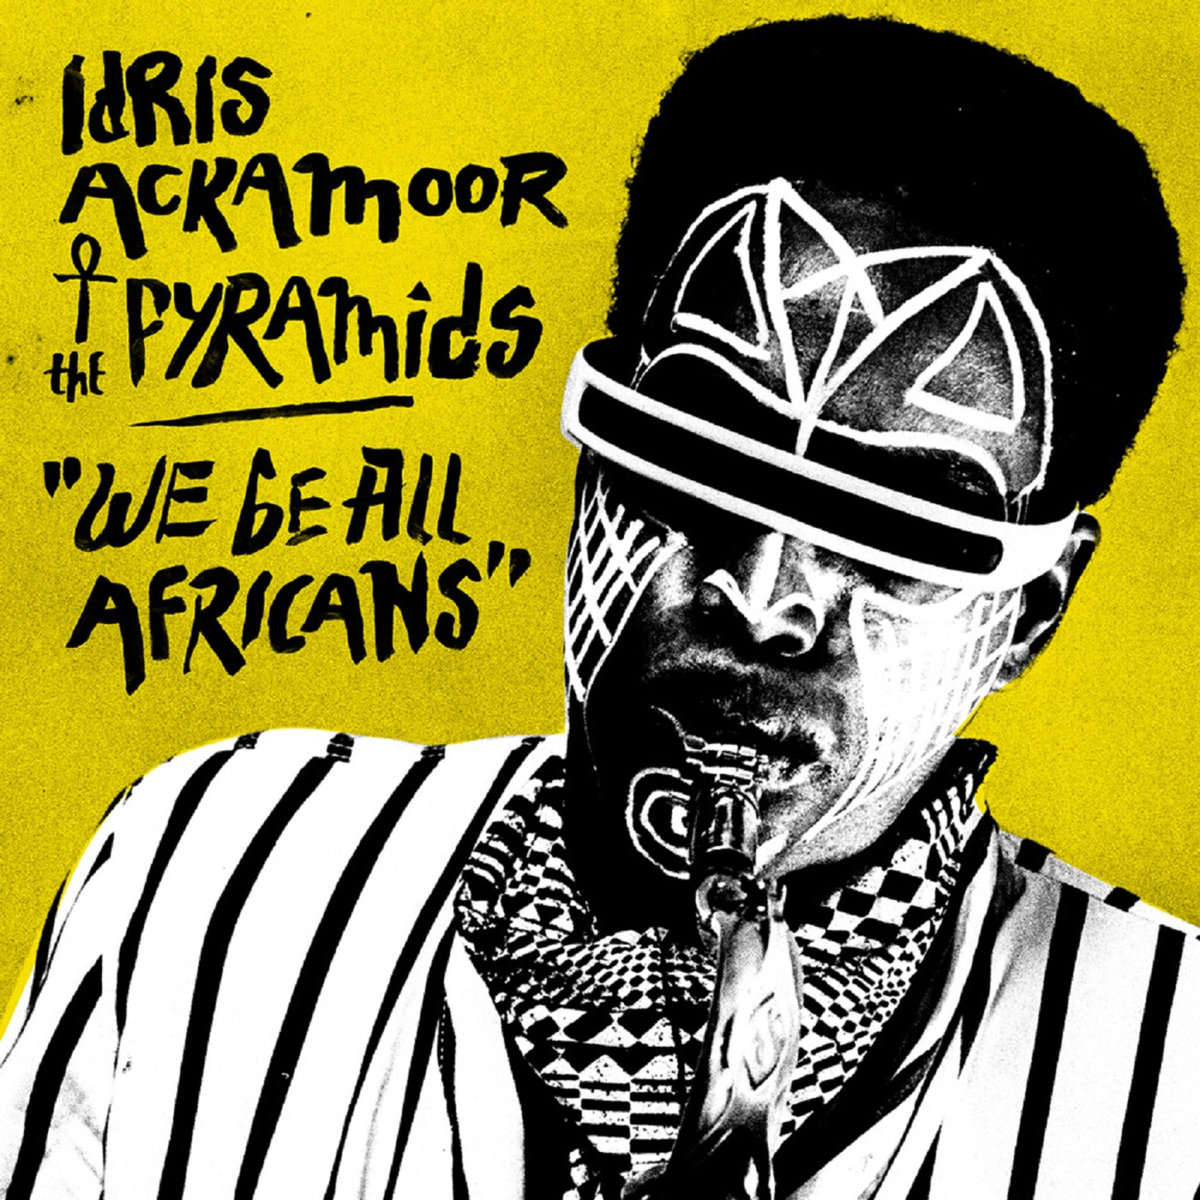 IDRIS ACKAMOOR & THE PYRAMIDS - WE BE ALL AFRICANS (STRUT, 2016)